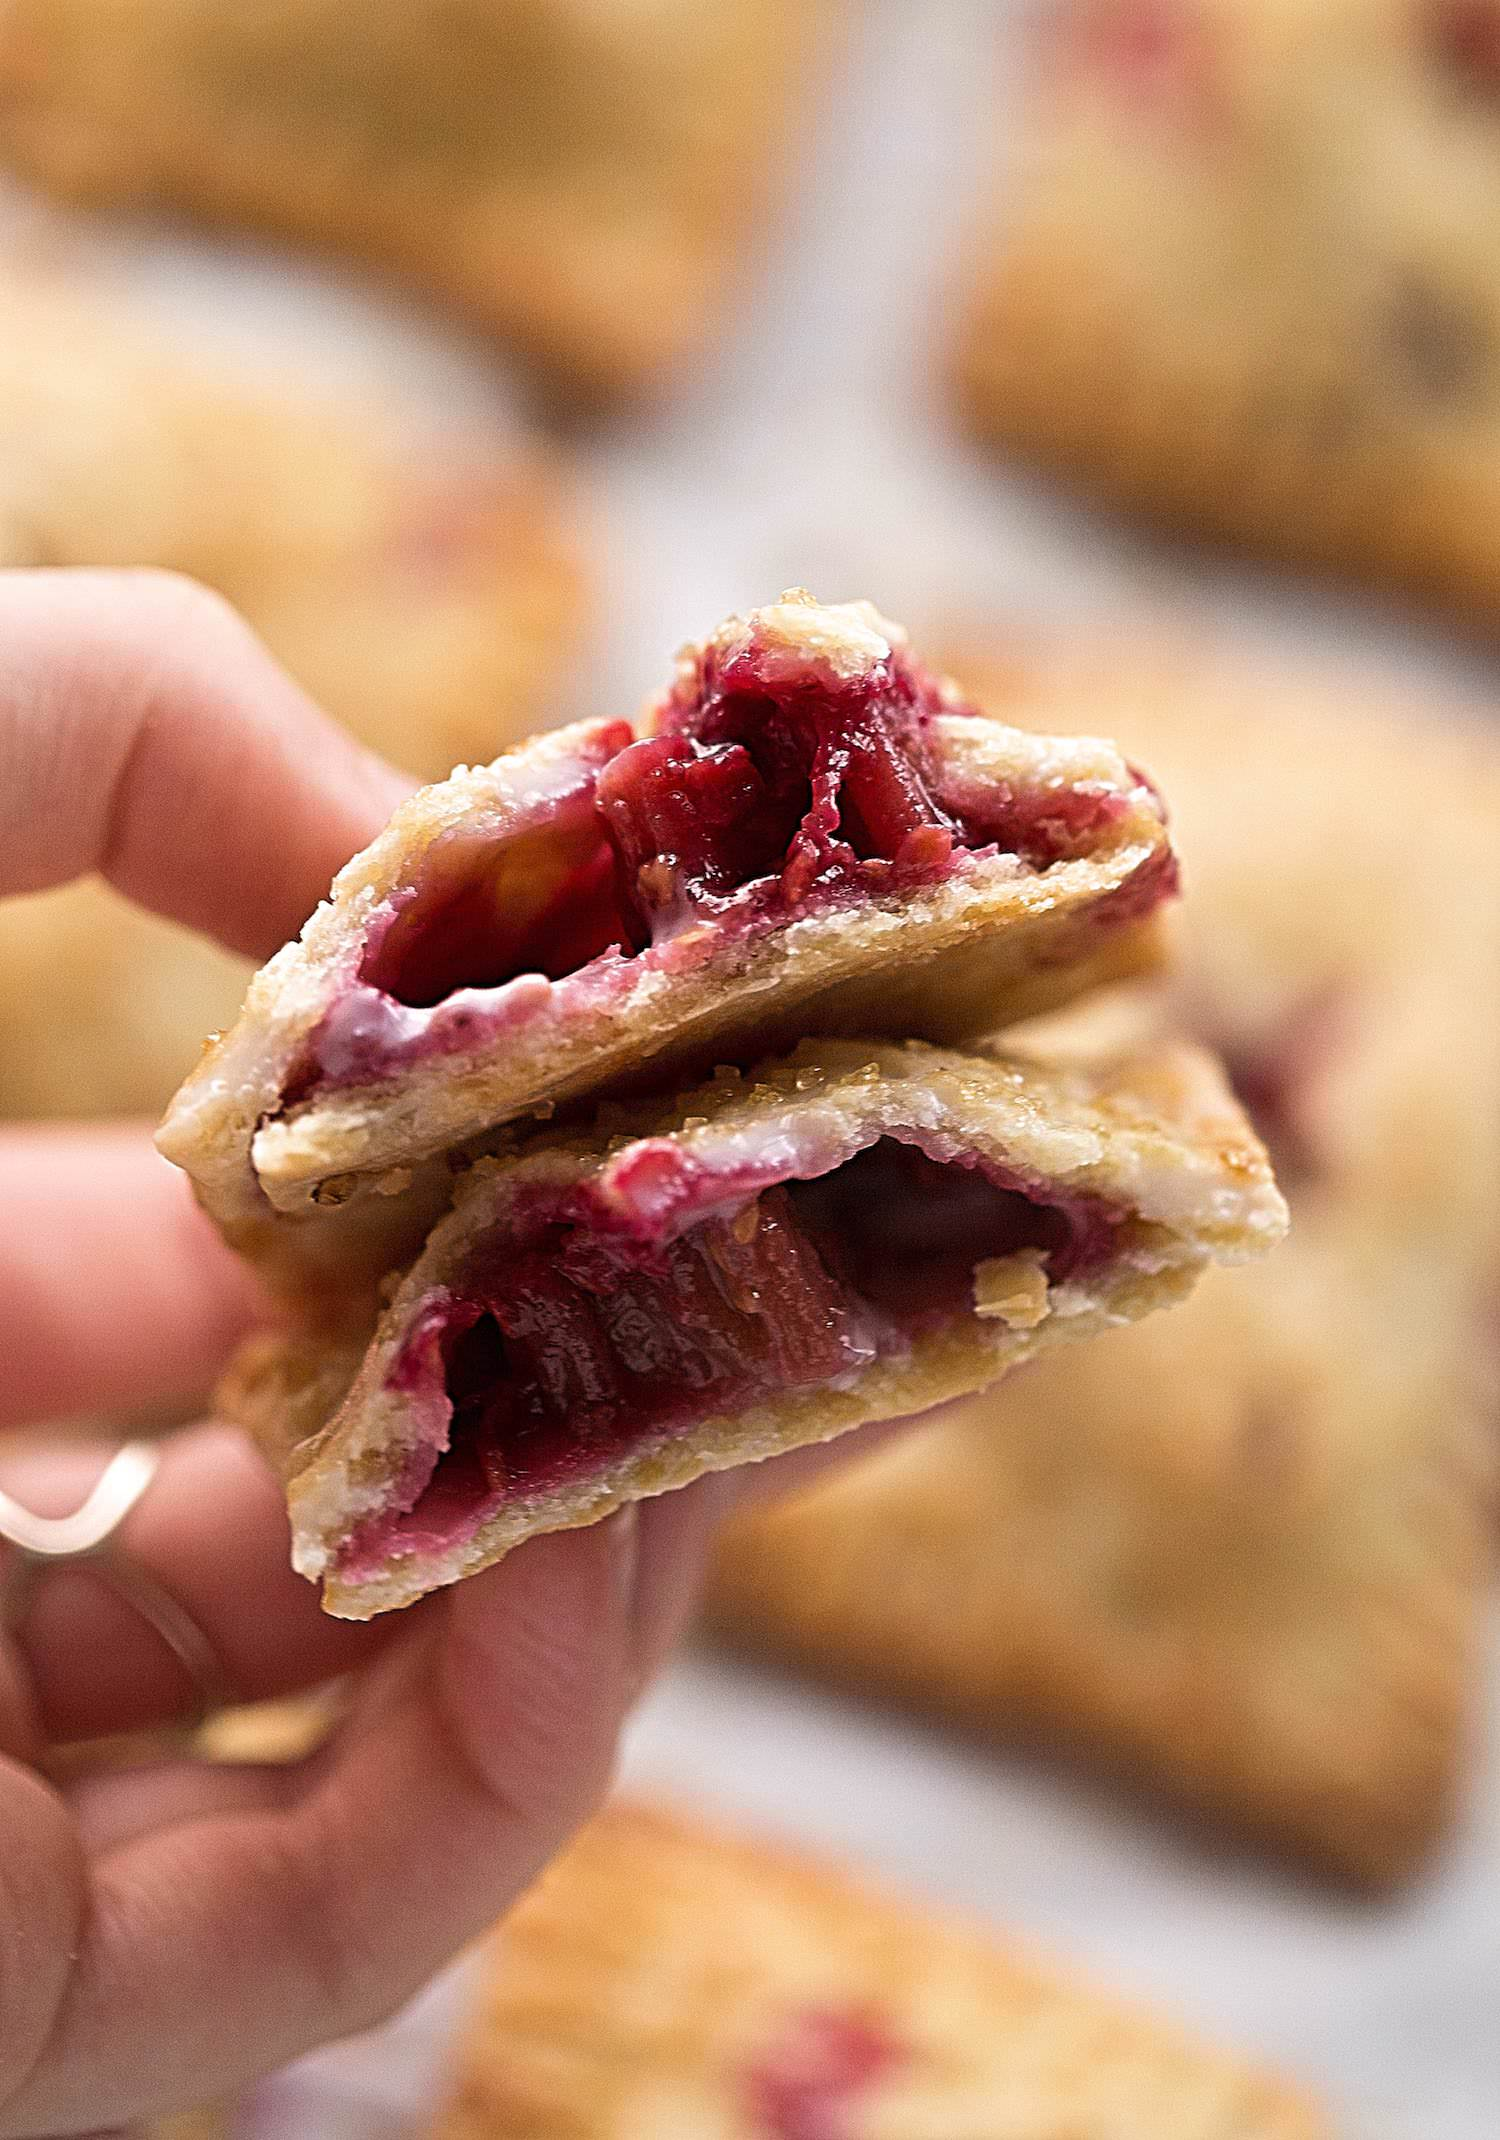 Raspberry Rhubarb Hand Pies: flaky pie dough with a tart and sweet raspberry-rhubarb filling in individual, travel-friendly, picnic-perfect form! | Trufflesandtrends.com